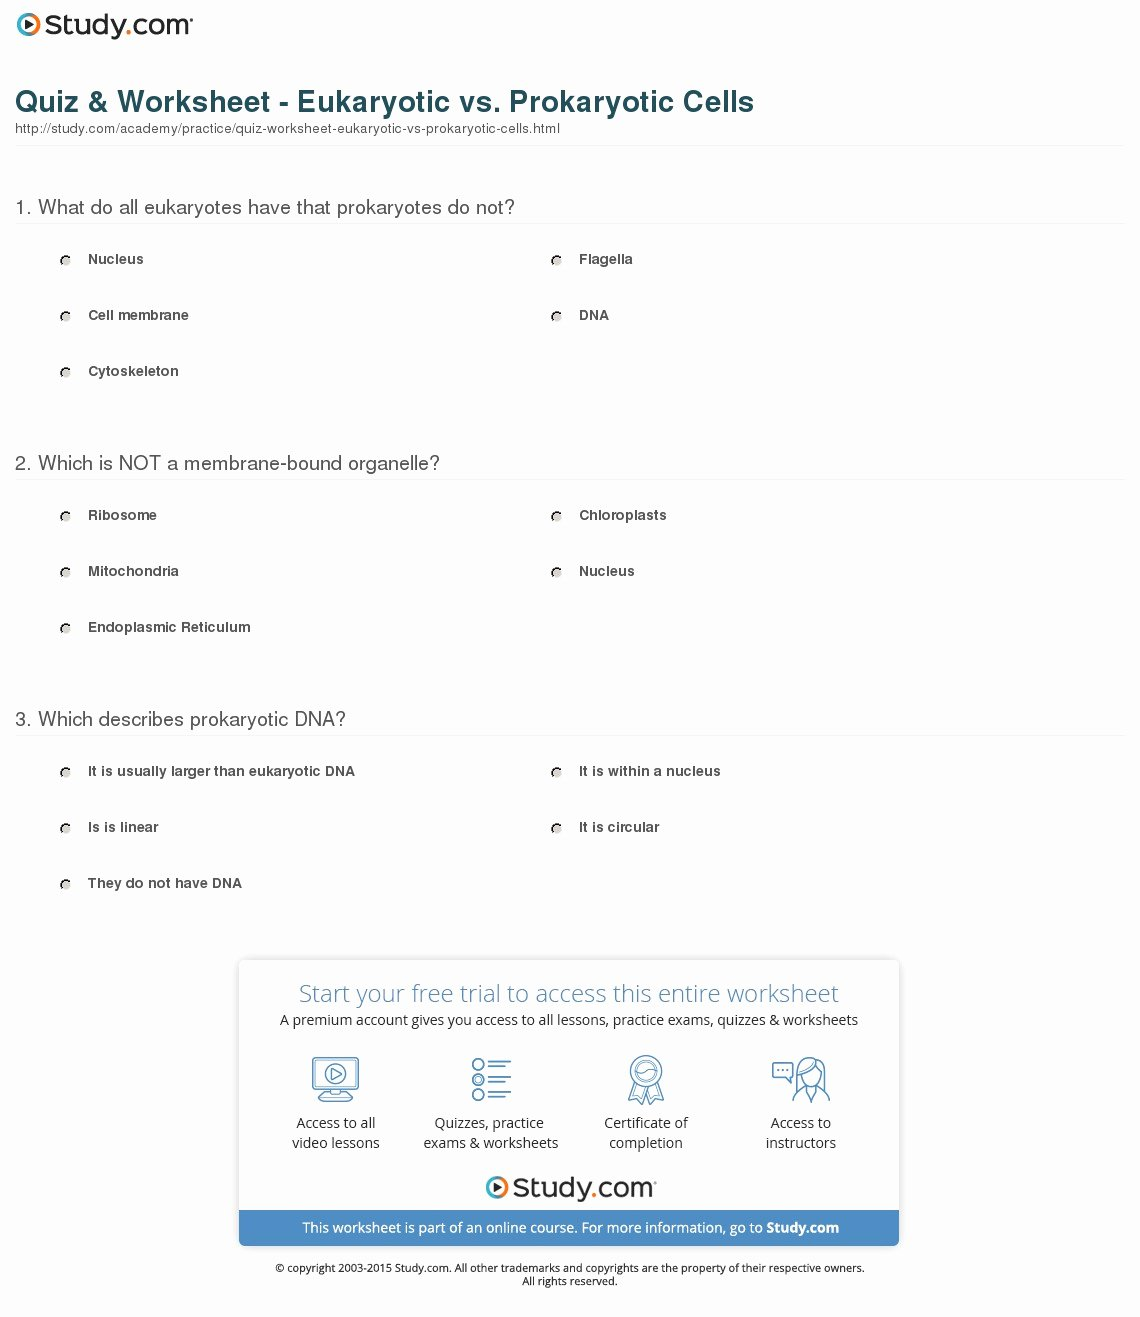 Prokaryotic and Eukaryotic Cells Worksheet Luxury Quiz & Worksheet Eukaryotic Vs Prokaryotic Cells